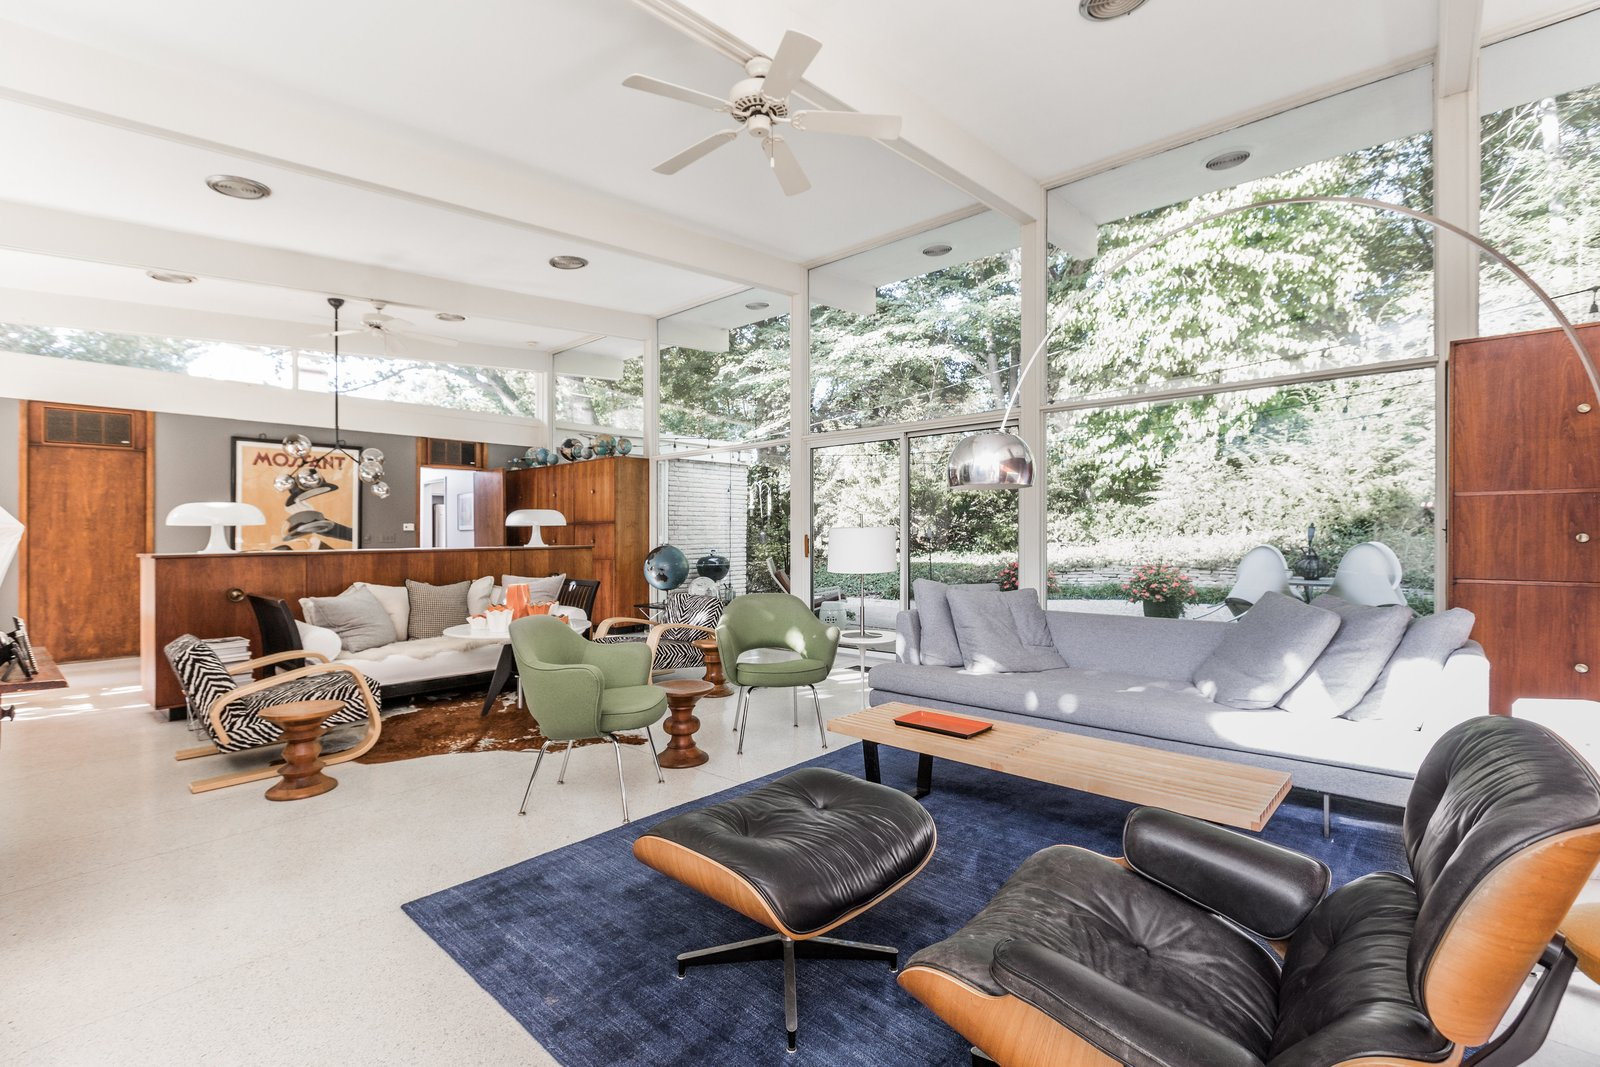 Living Room, Chair, Sofa, End Tables, Coffee Tables, Storage, Ceiling Lighting, Pendant Lighting, Floor Lighting, Recliner, Table Lighting, and Lamps  Photo 3 of 10 in A Midcentury Gem by a Famed Indiana Architect Offered at $450K